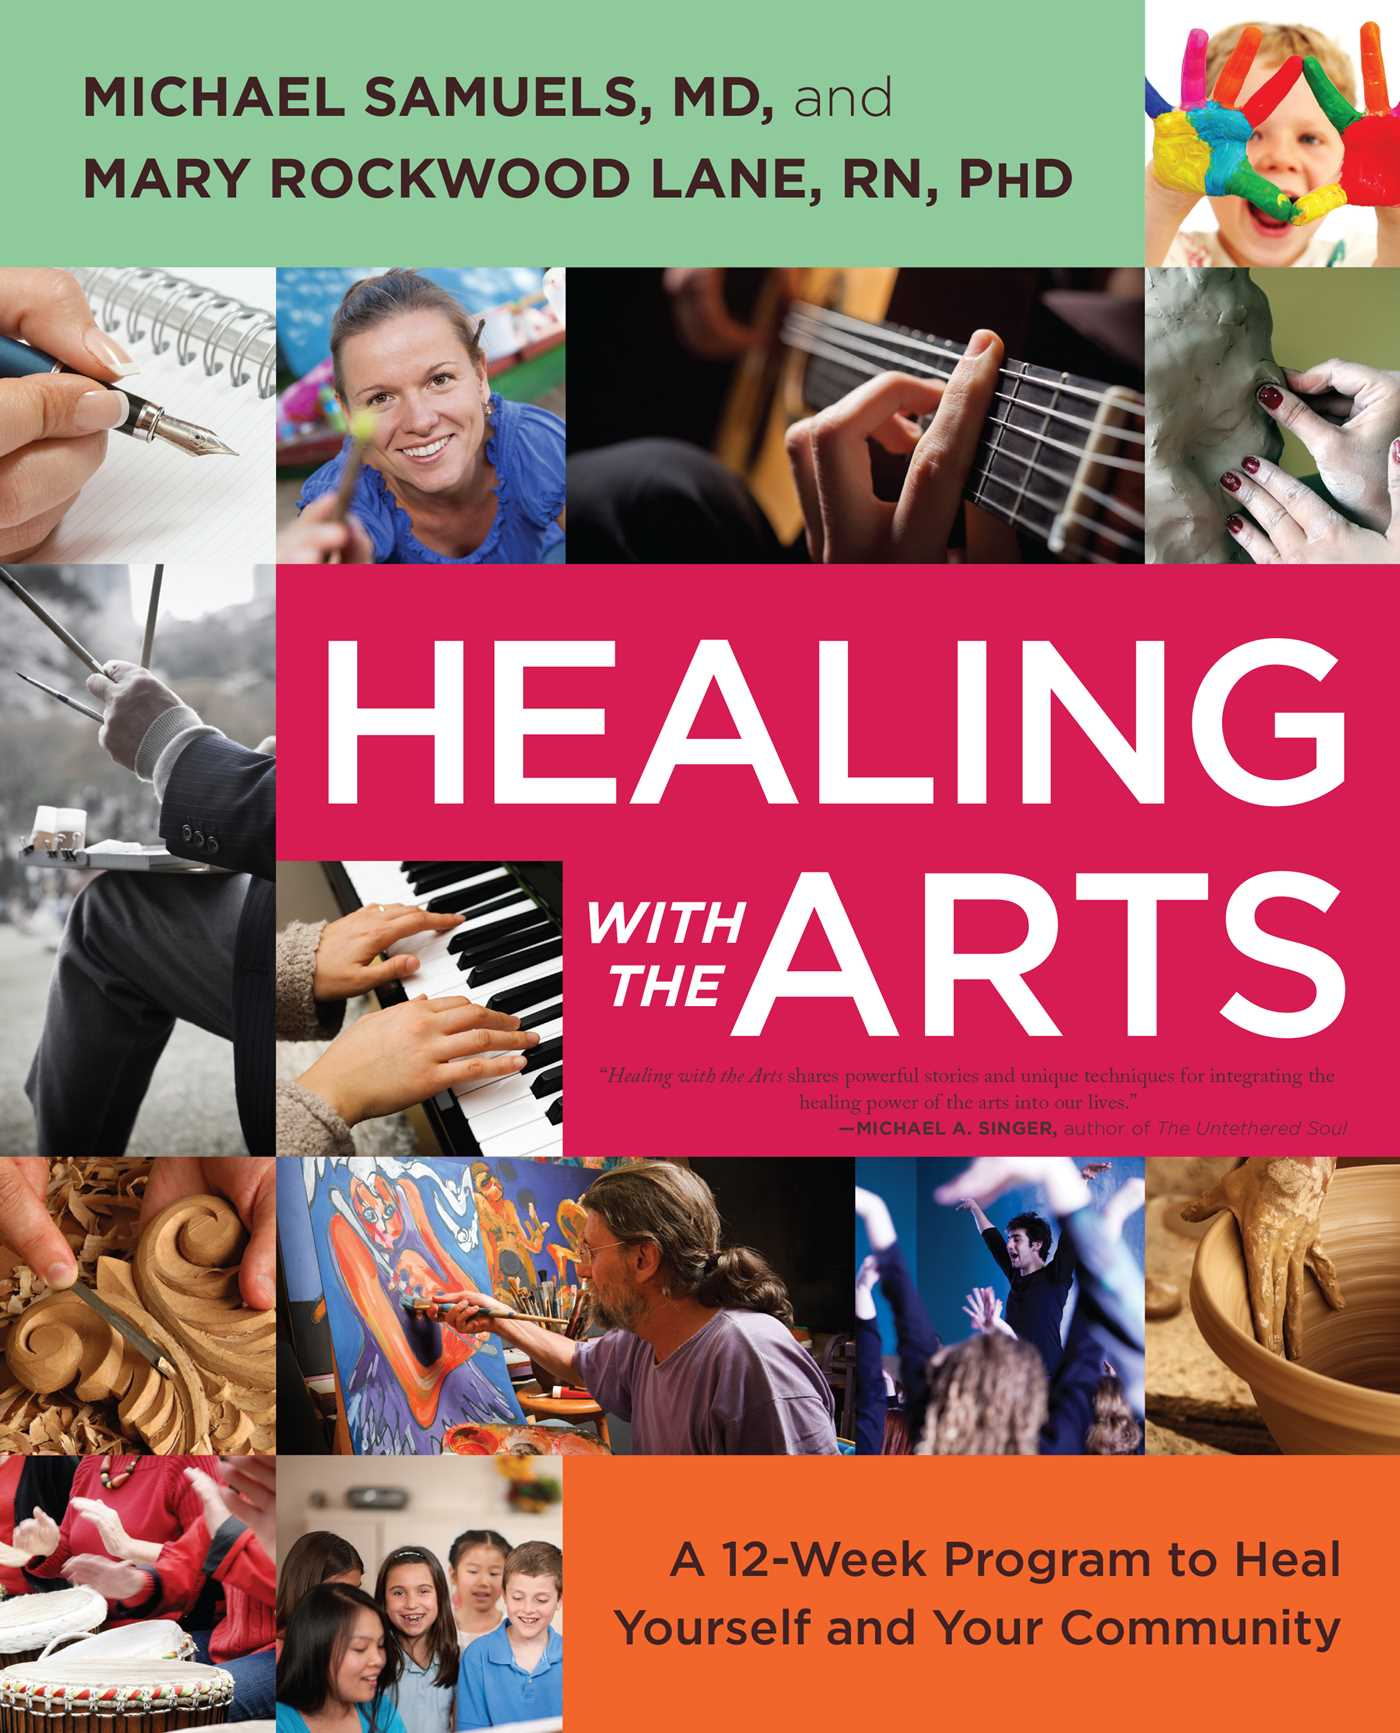 Healing-with-the-arts-embedded-videos-9781476754550_hr